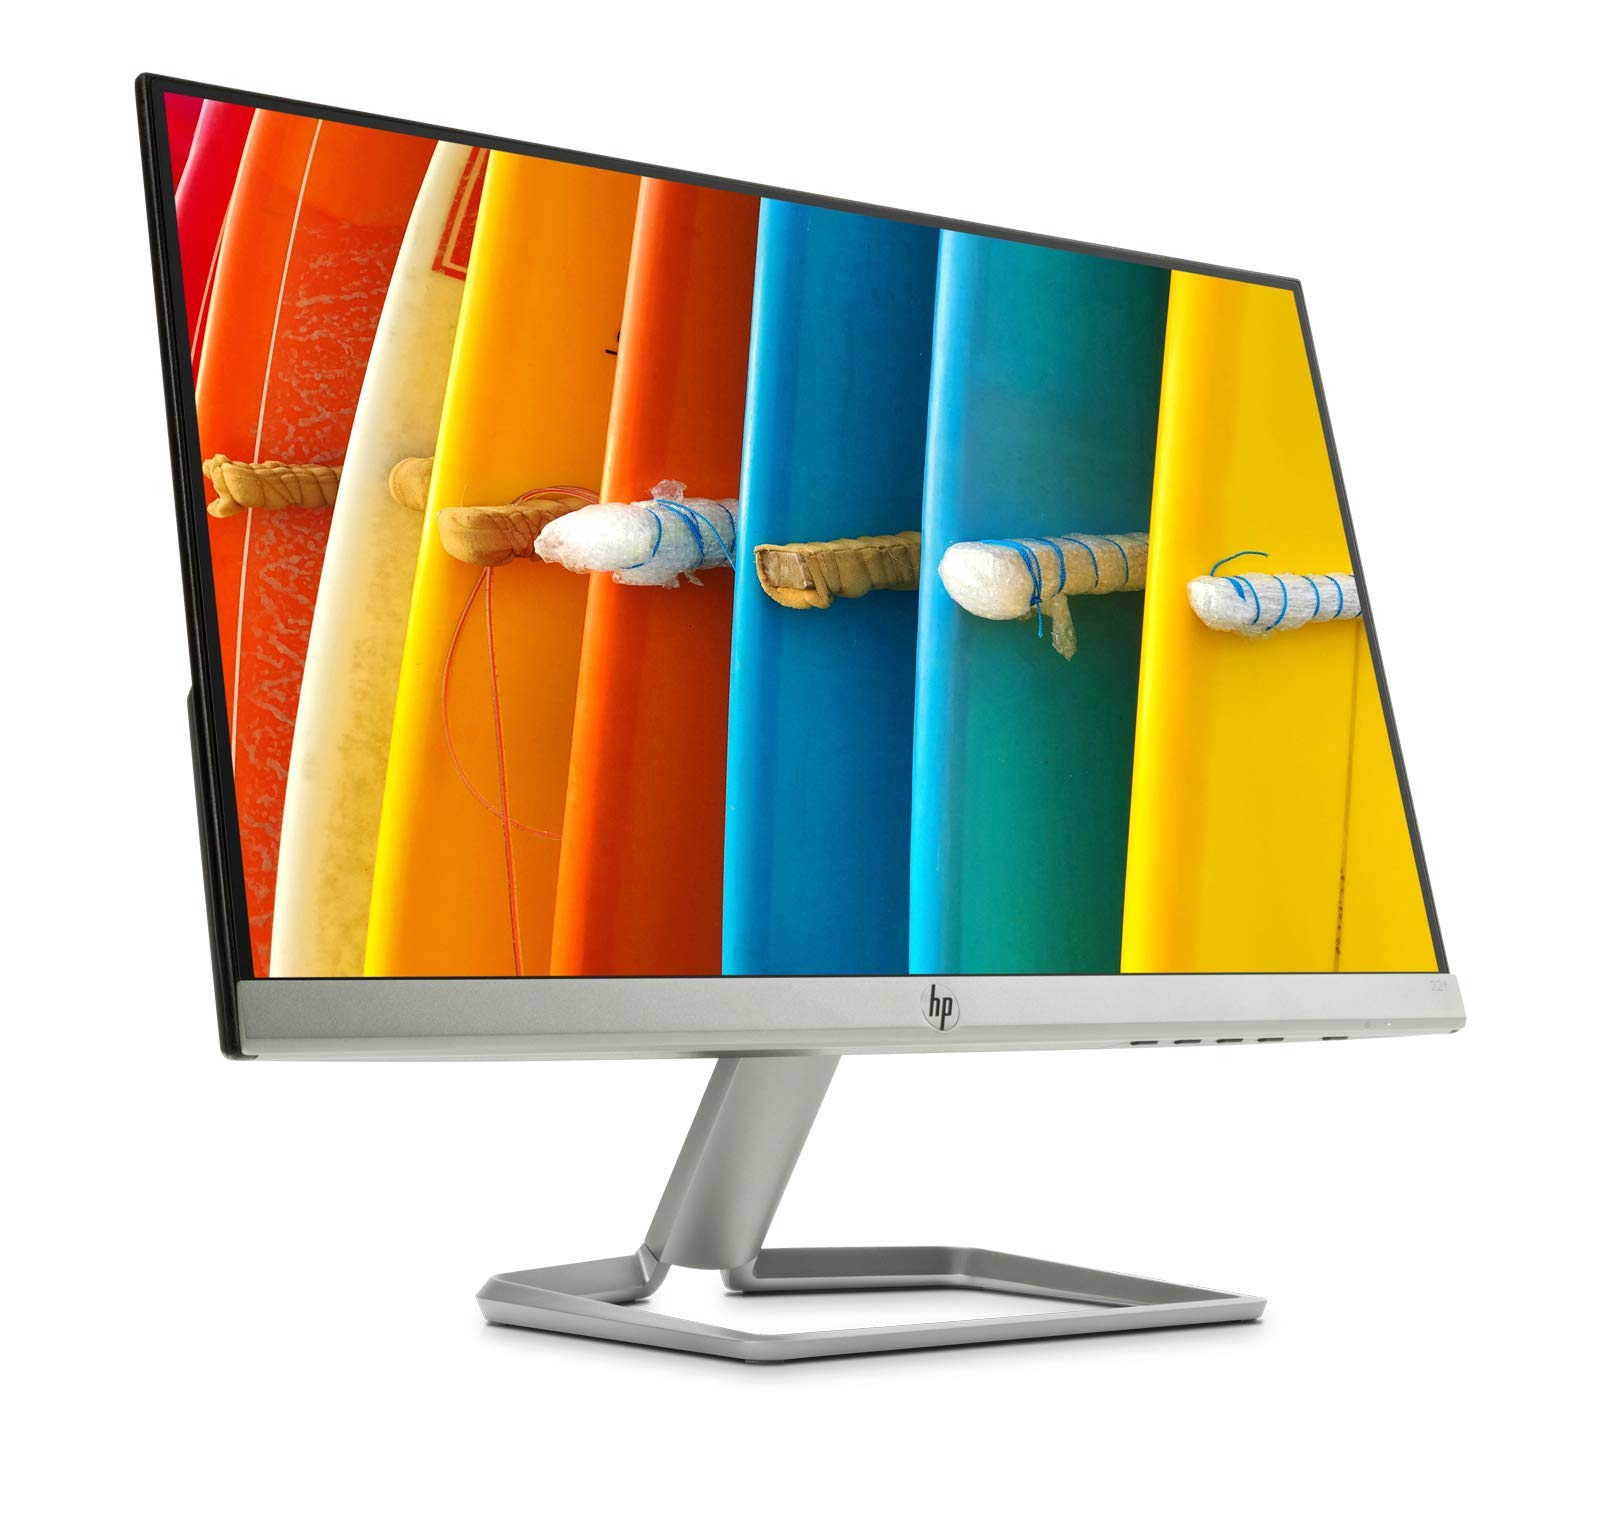 HP-22w-215-inch-LED-Monitor-1920-x-1080-Pixel-Full-HD-FHD-5ms-60hz-Refresh-Rate-HDMI-VGA